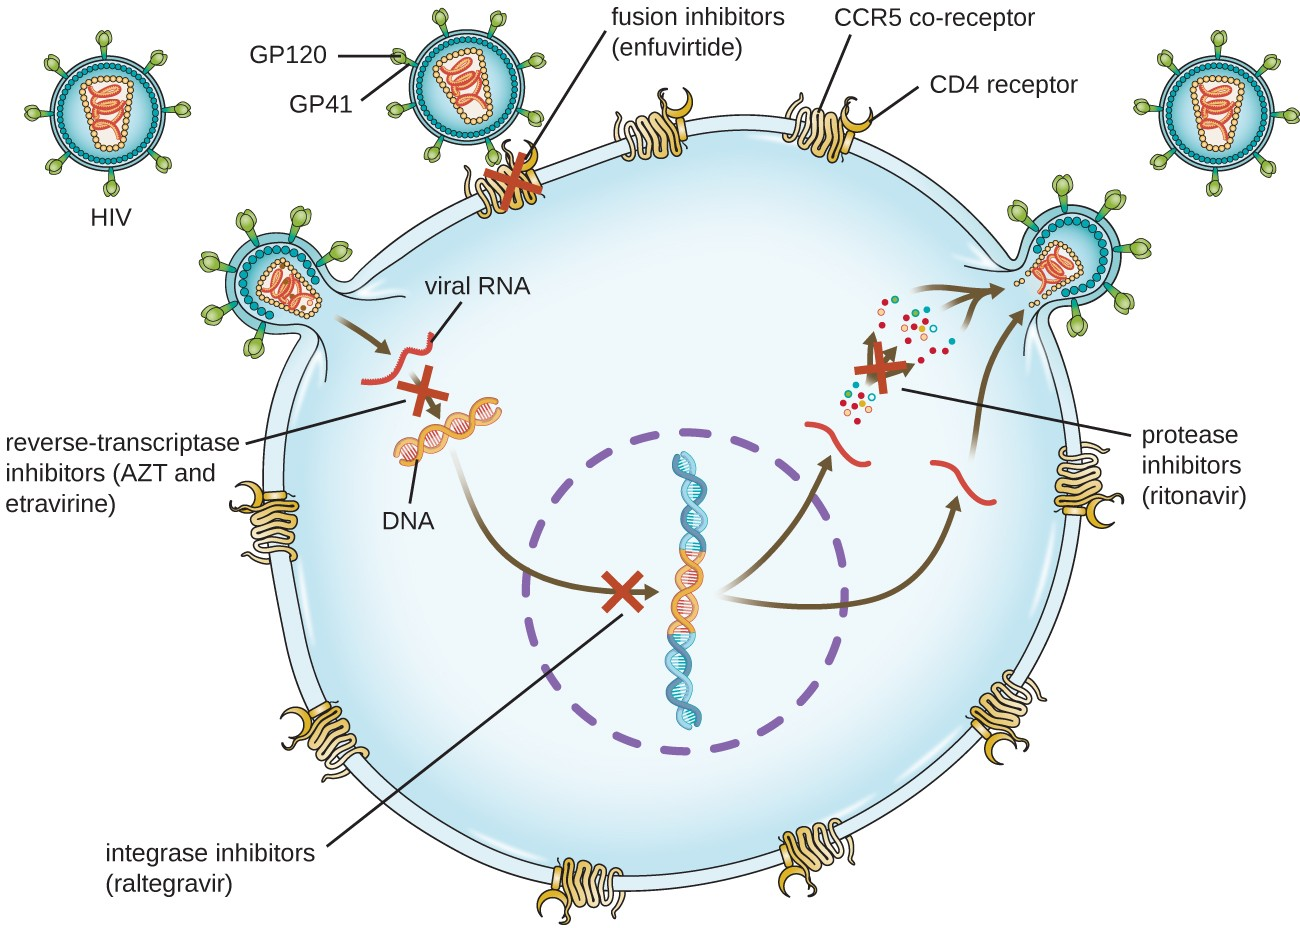 hight resolution of diagram showing hiv infection and locations where drugs can stop the infection gp120 and g